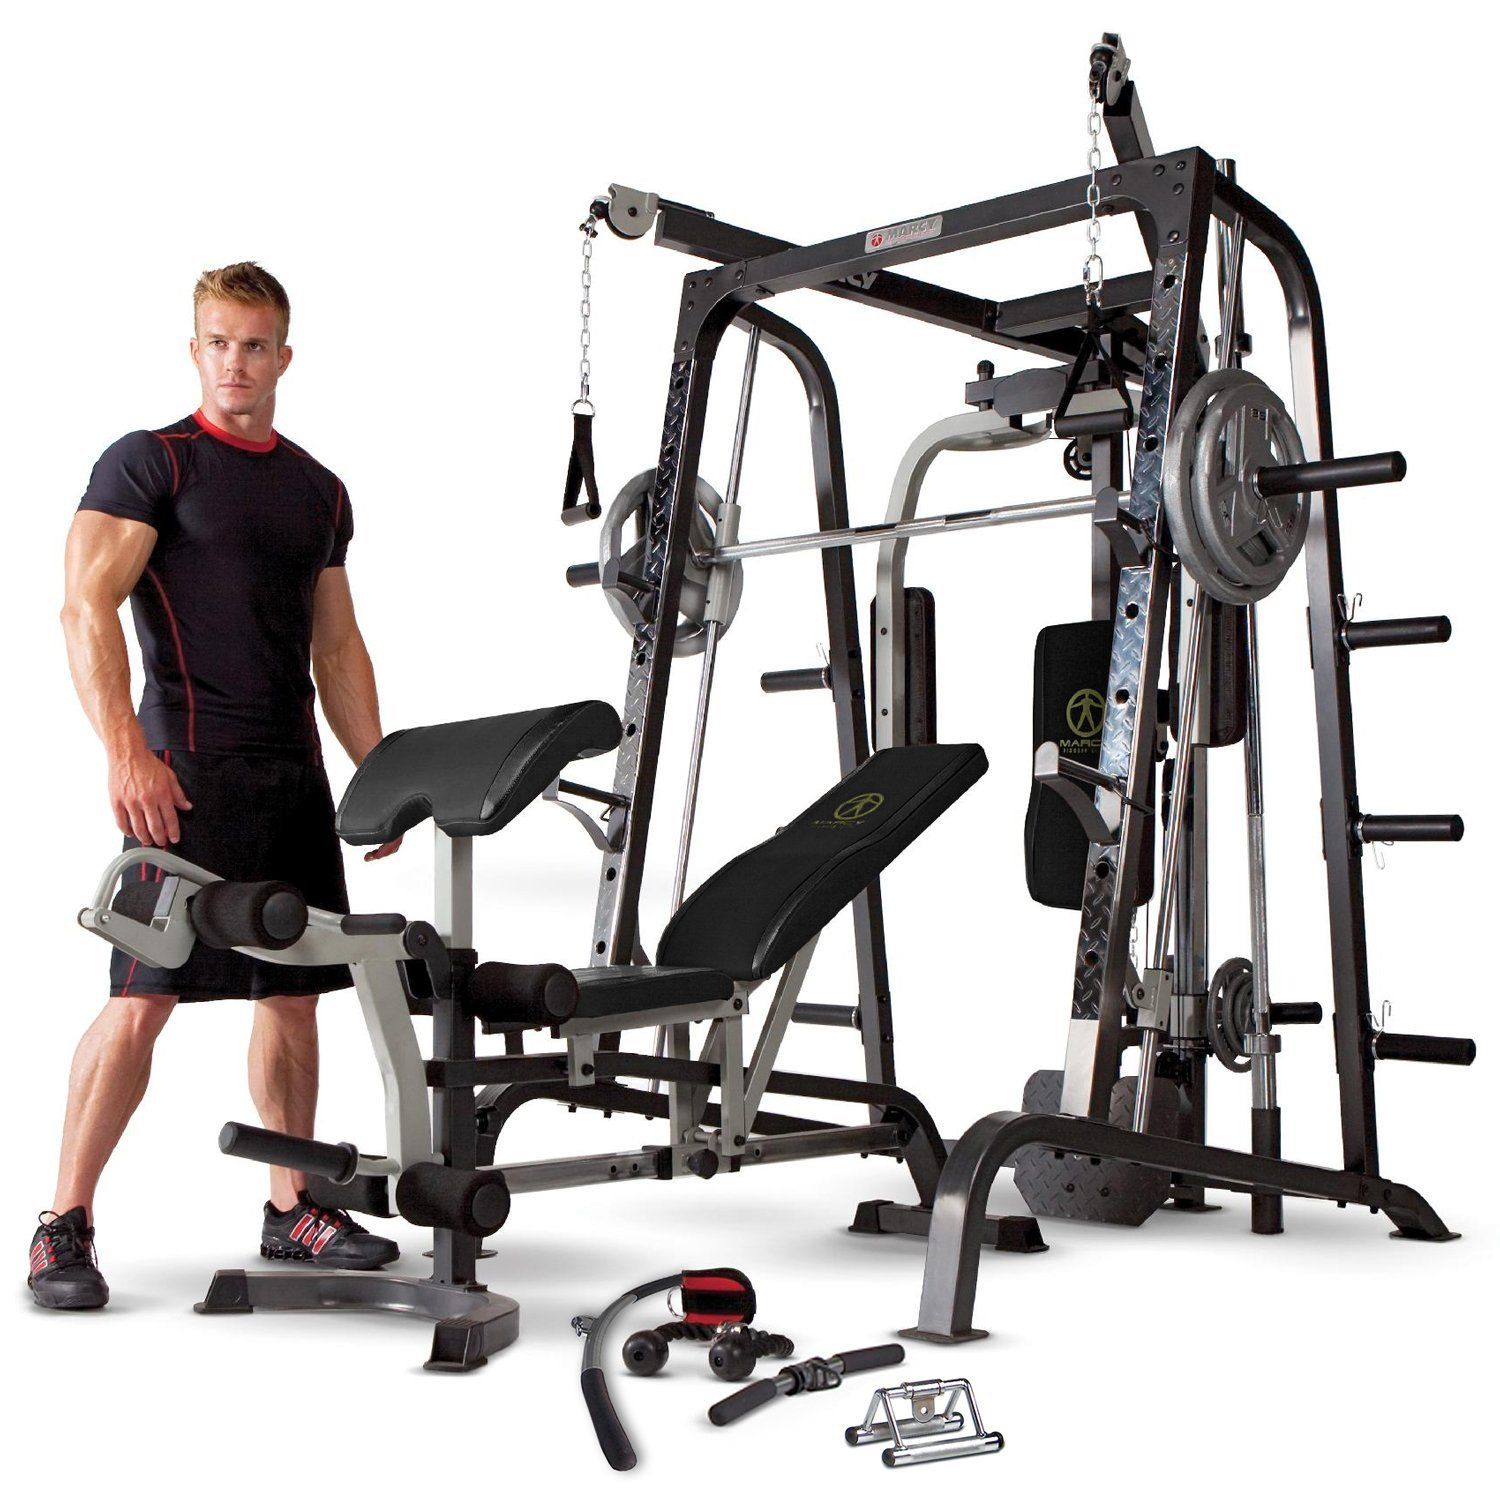 Powerhouse Fitness Weight Bench | Powerhouse Weight Bench | Weight Bench Sports Authority